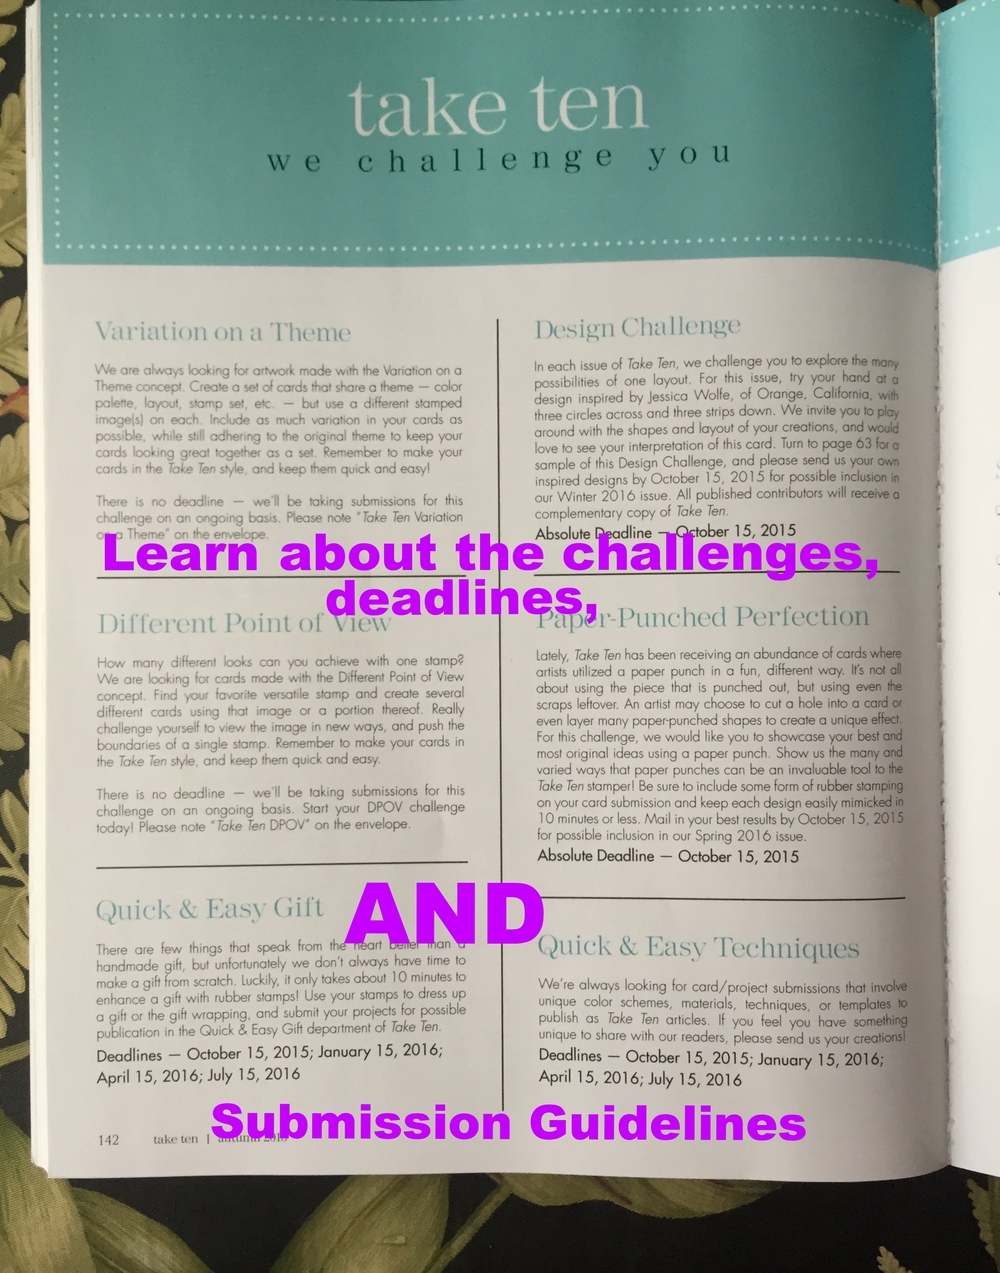 We Challenge You - Guidelines and Deadlines